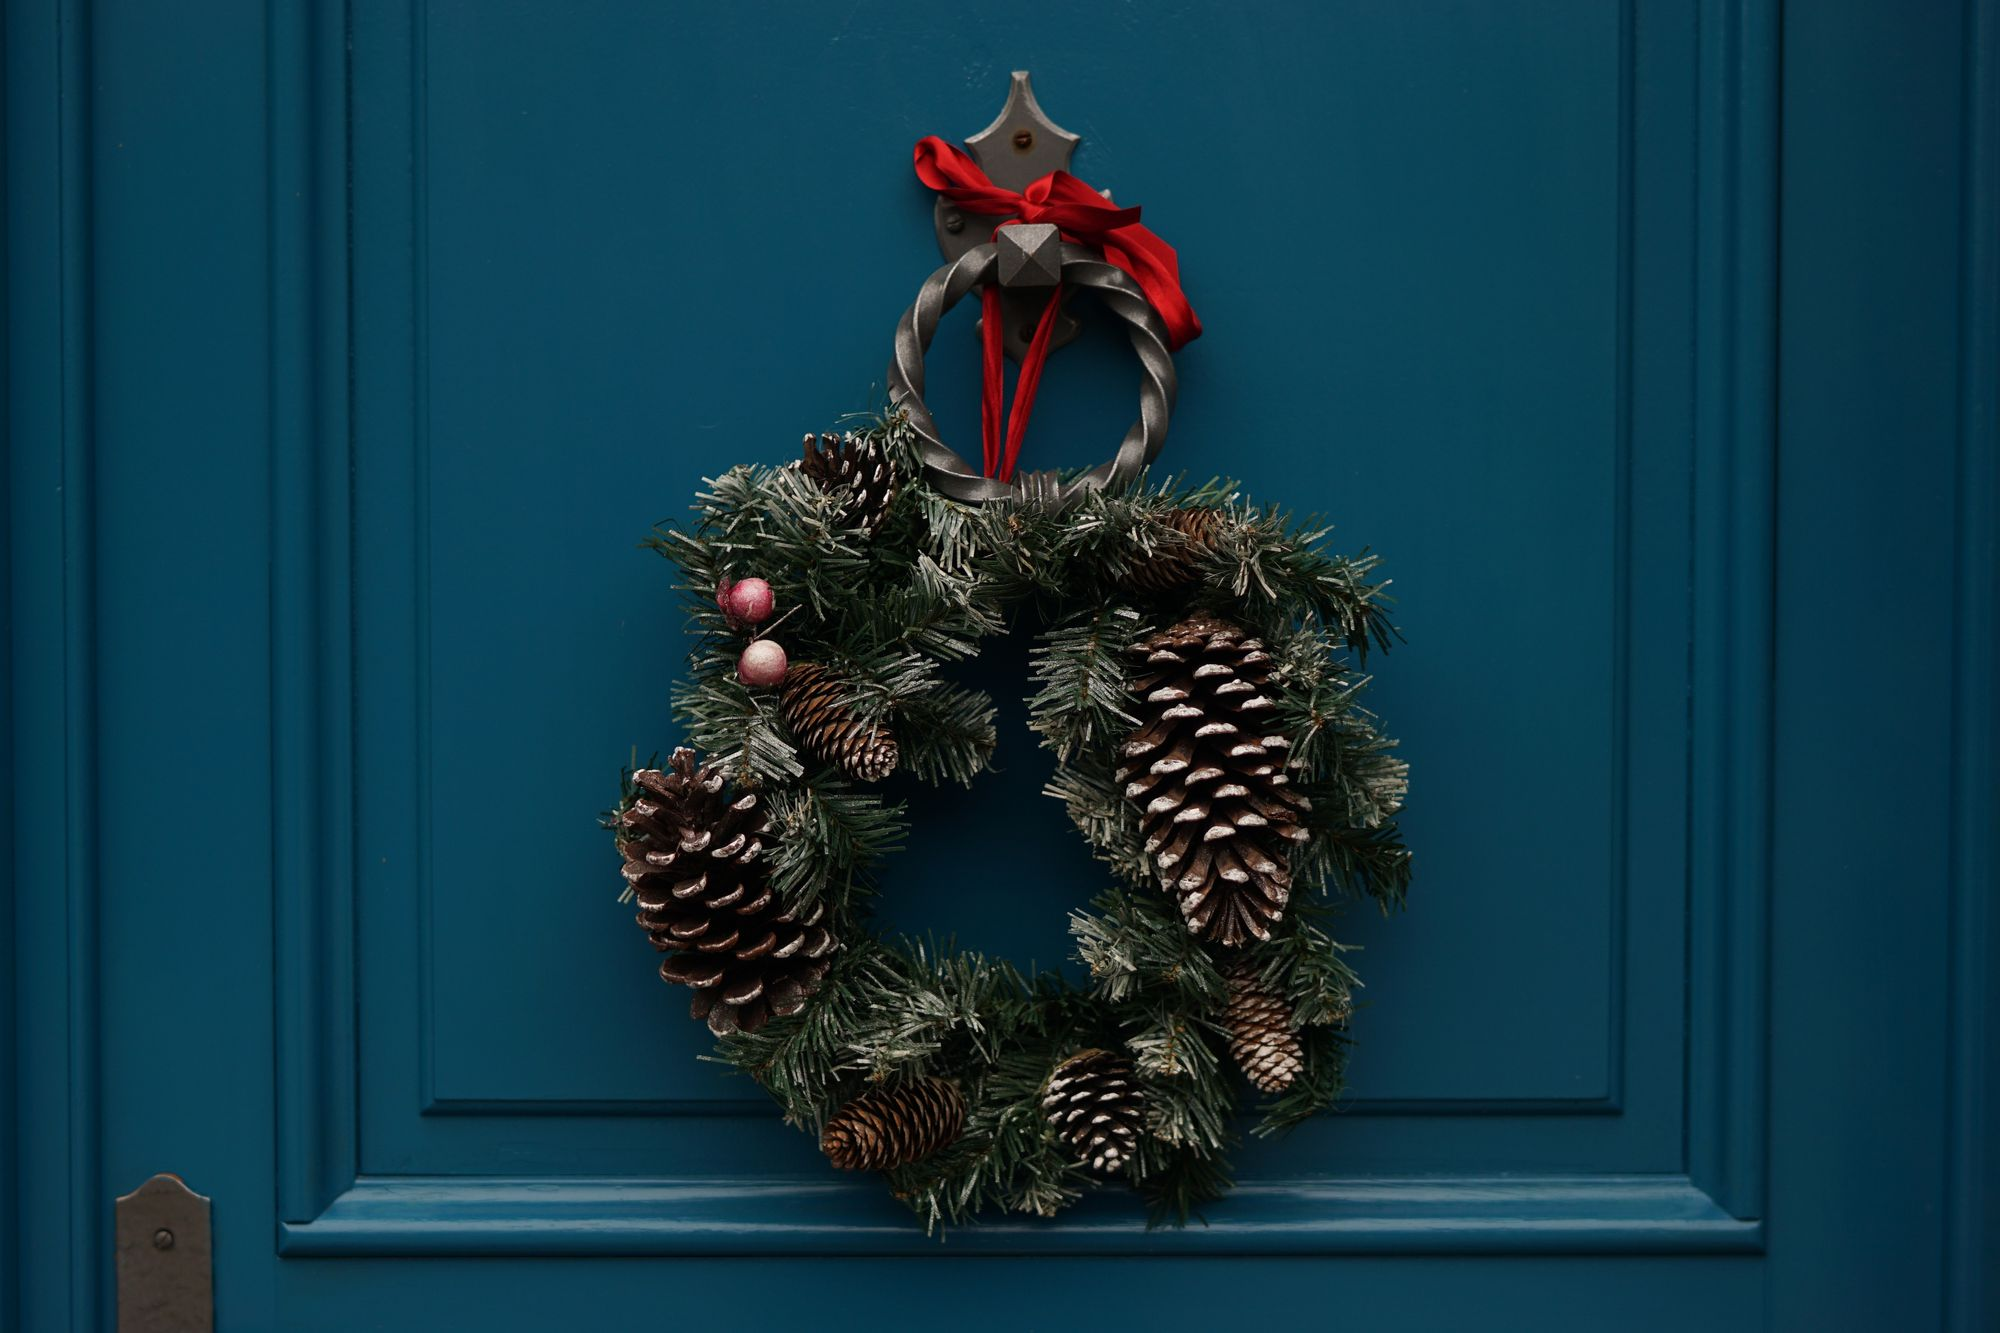 6 Reasons To Buy A Home During The Holidays